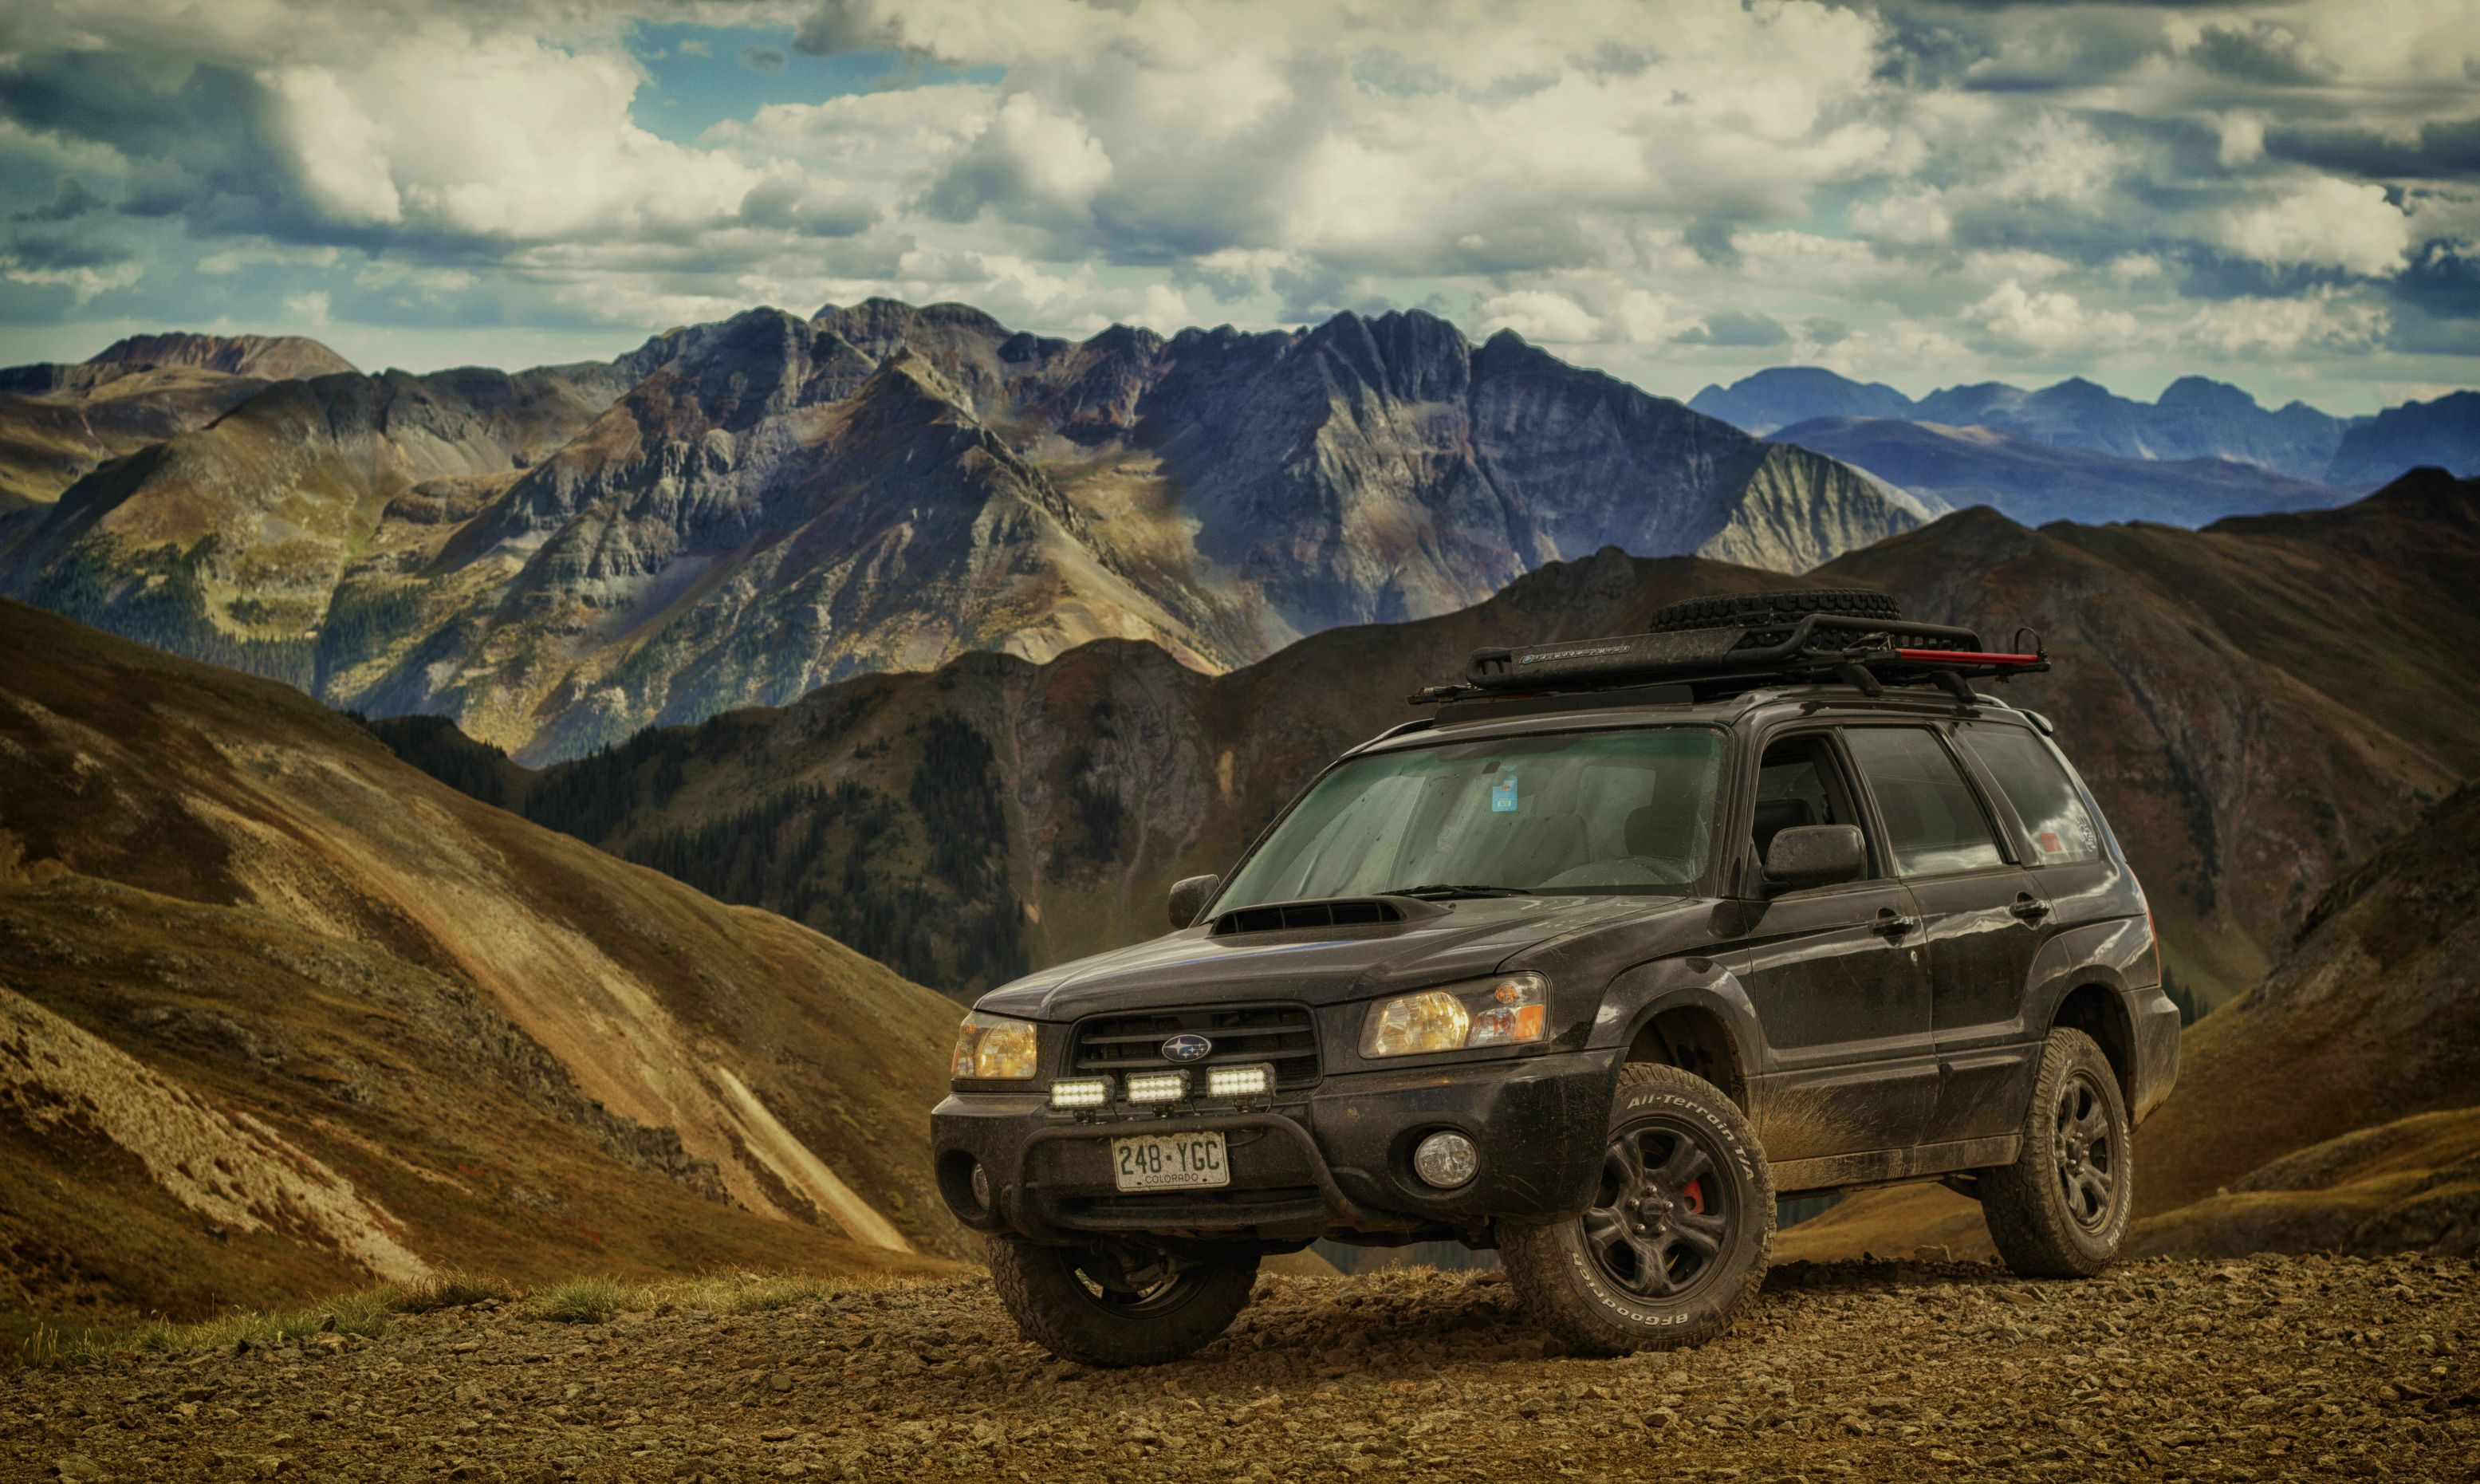 Off road forester japanese cars pinterest subaru subaru off road forester japanese cars pinterest subaru subaru forester and cars vanachro Gallery